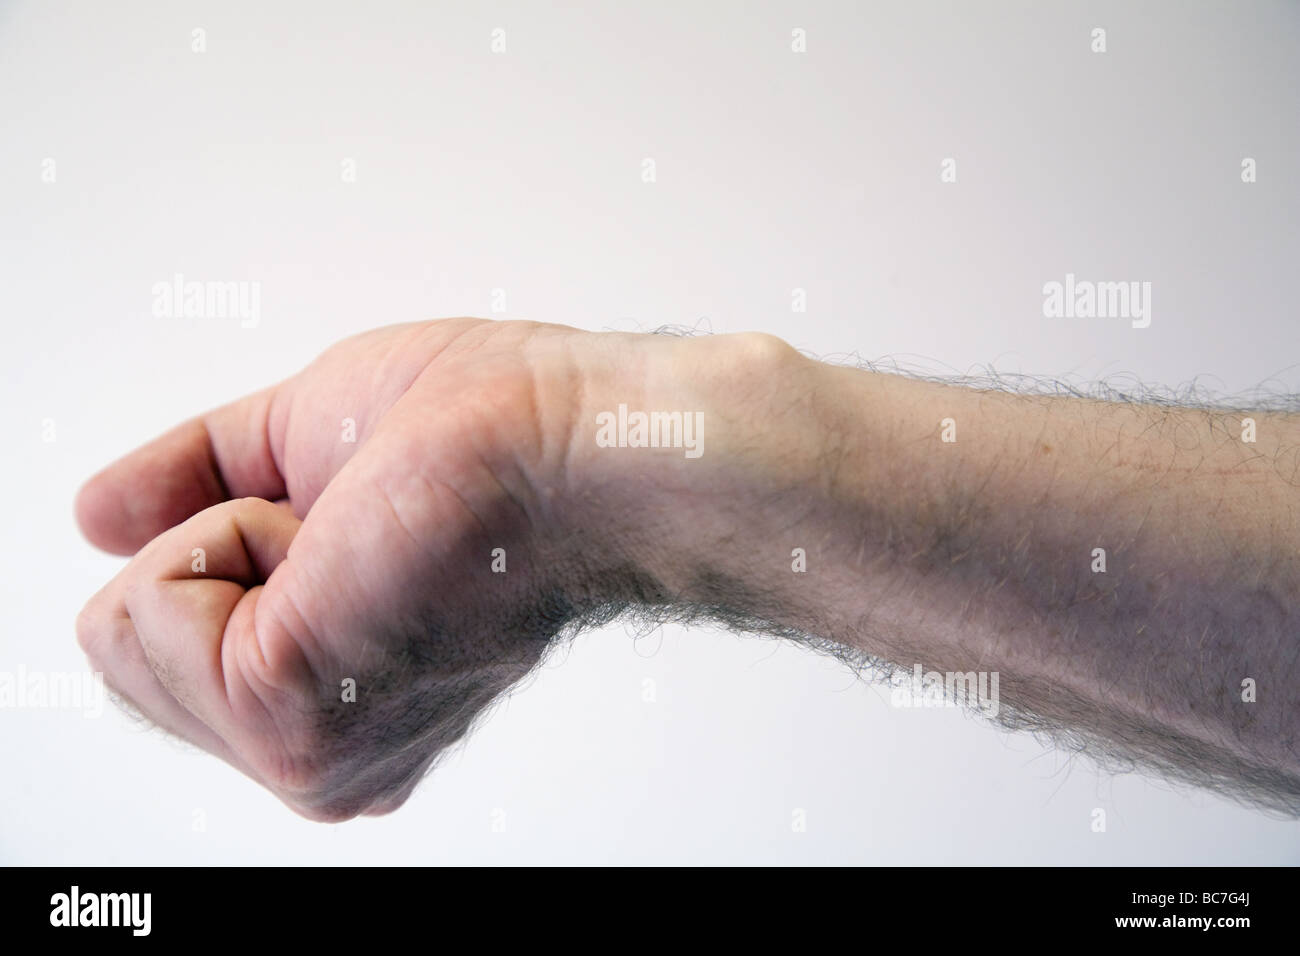 A ganglion (cyst from the joint) on the wrist of a middle aged man - Stock Image